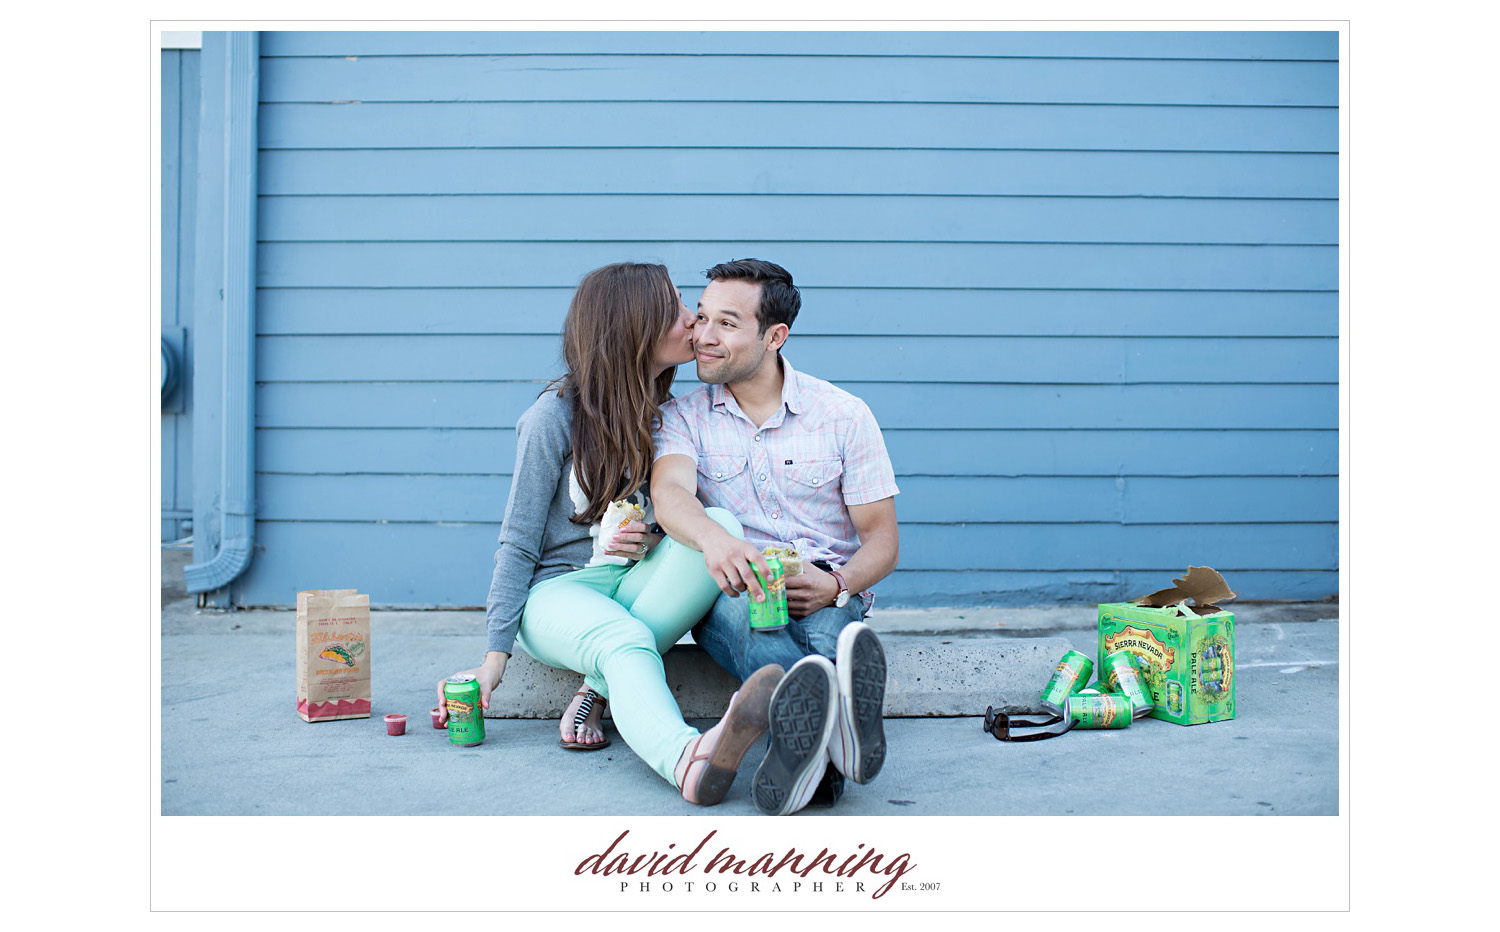 Encinitas-Engagement-Photos-San-Diego-David-Manning_0011.jpg